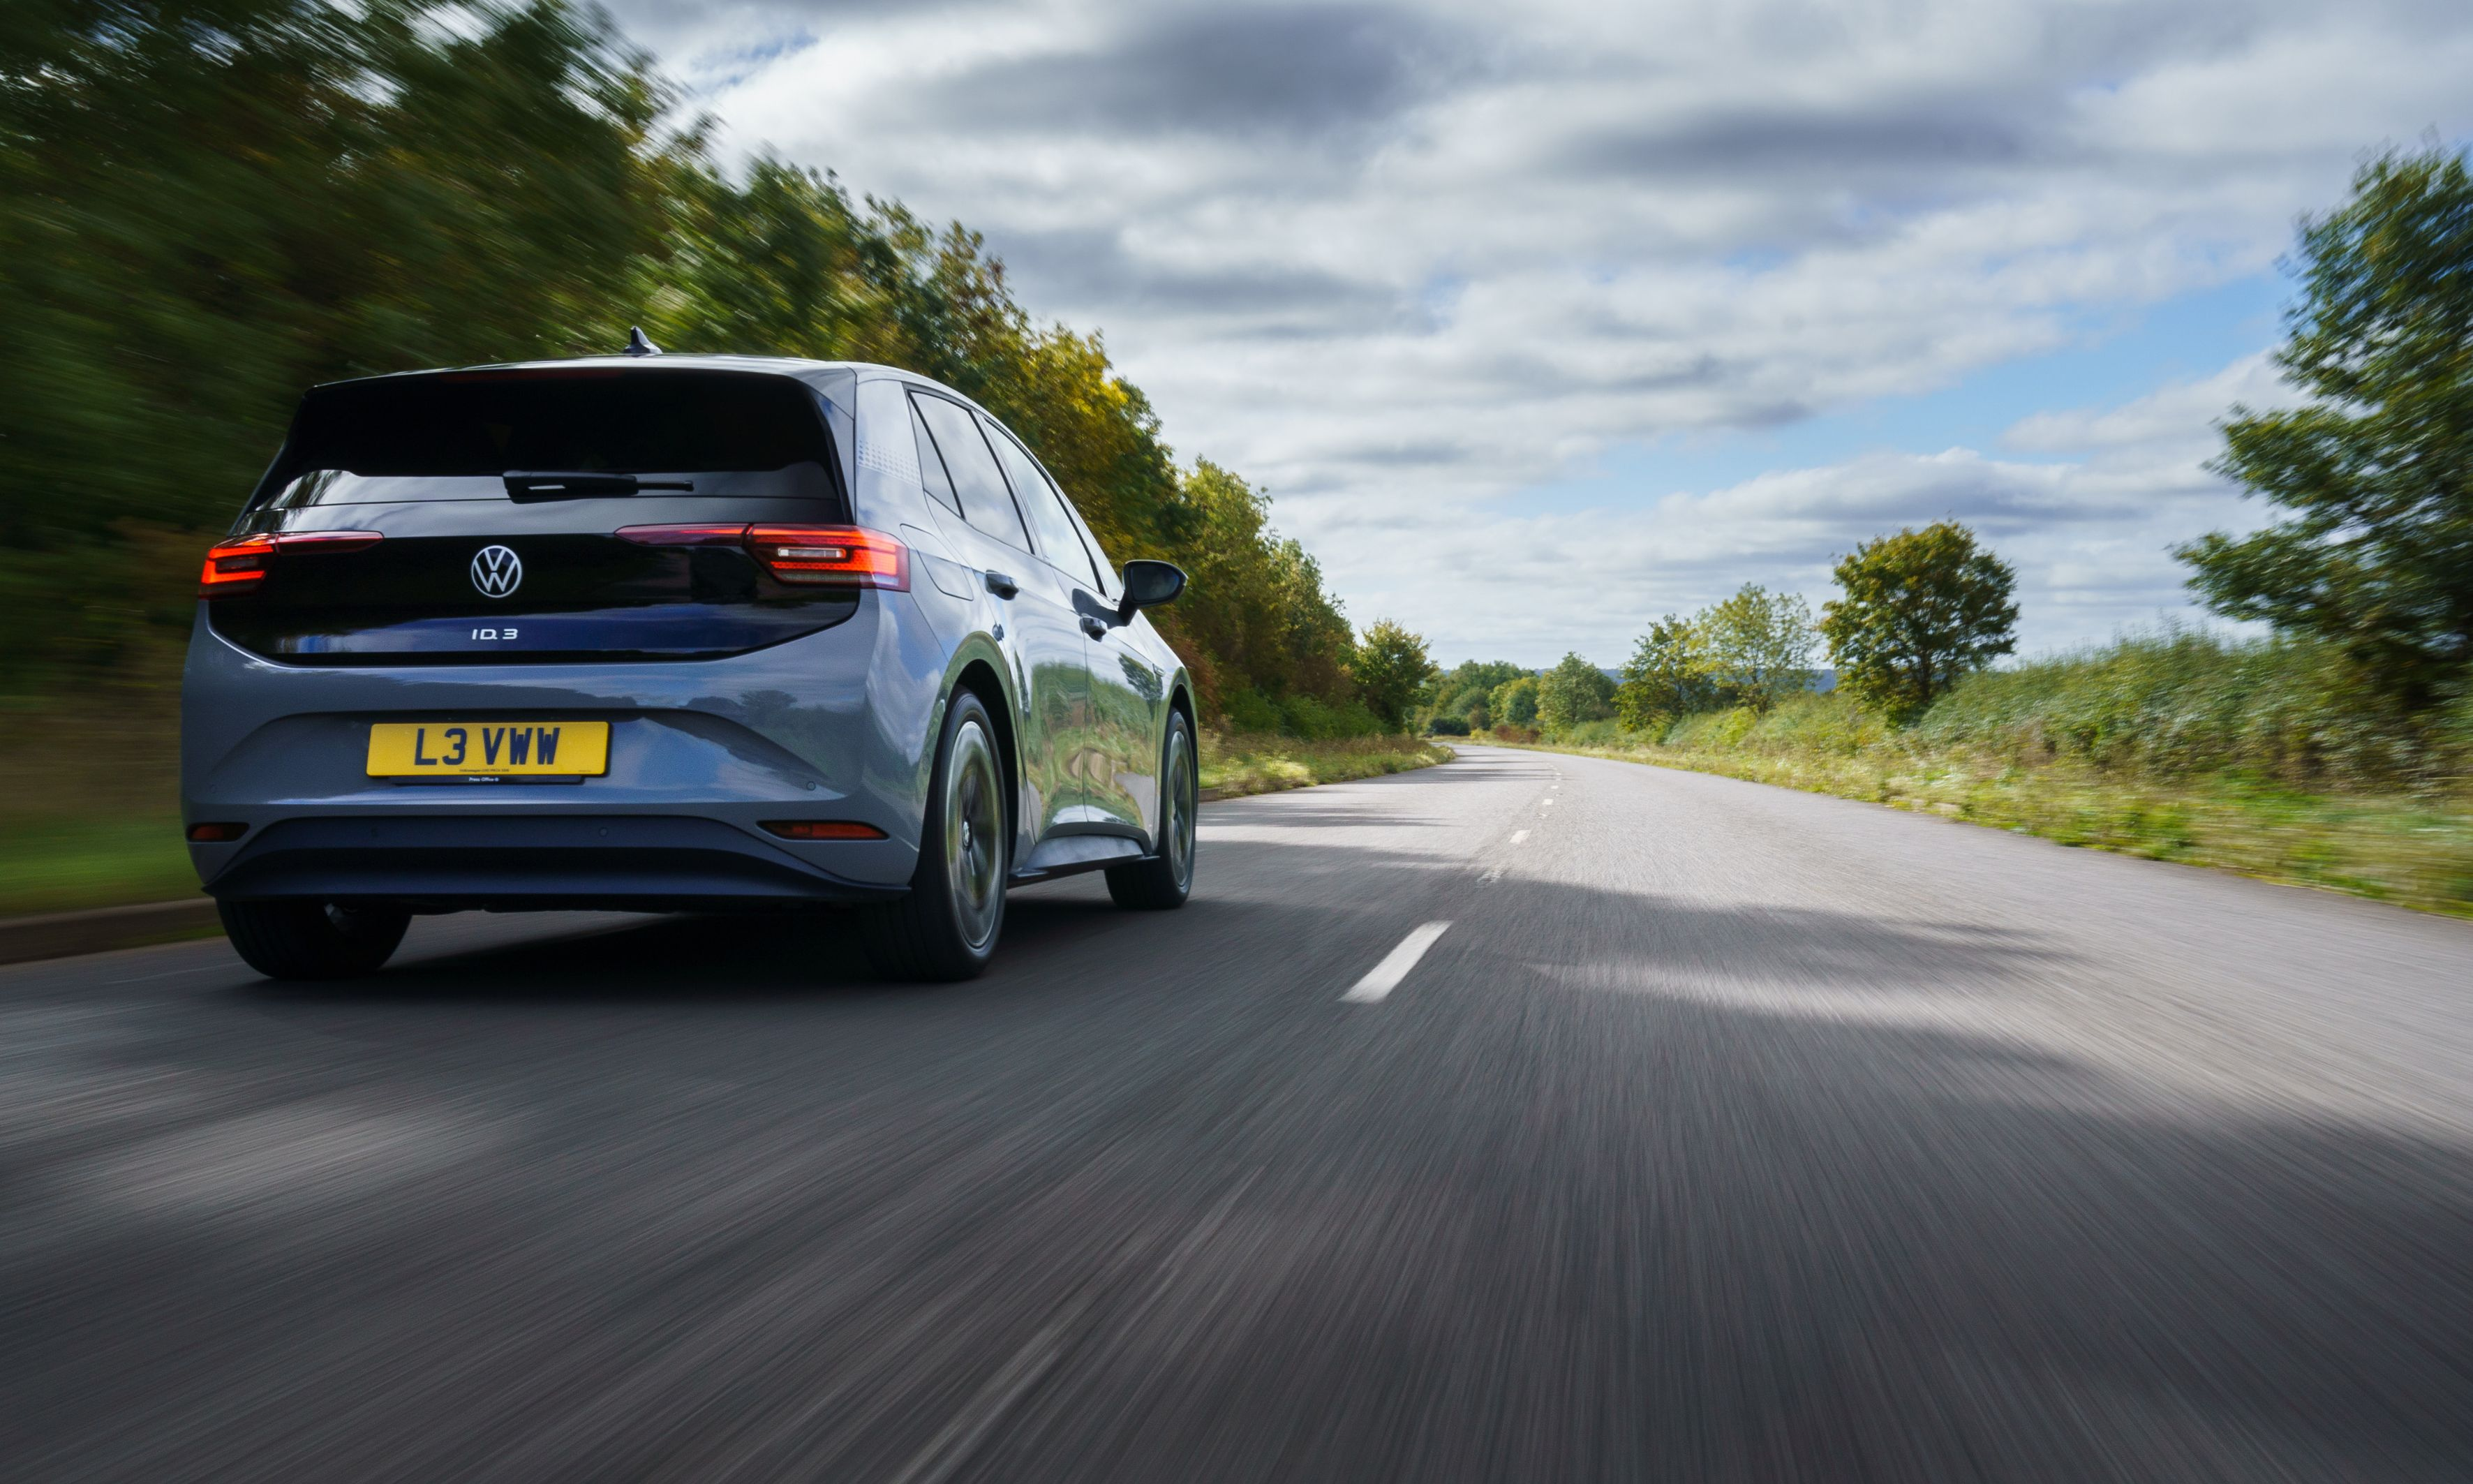 Volkswagen VW ID.3 electric car on the road